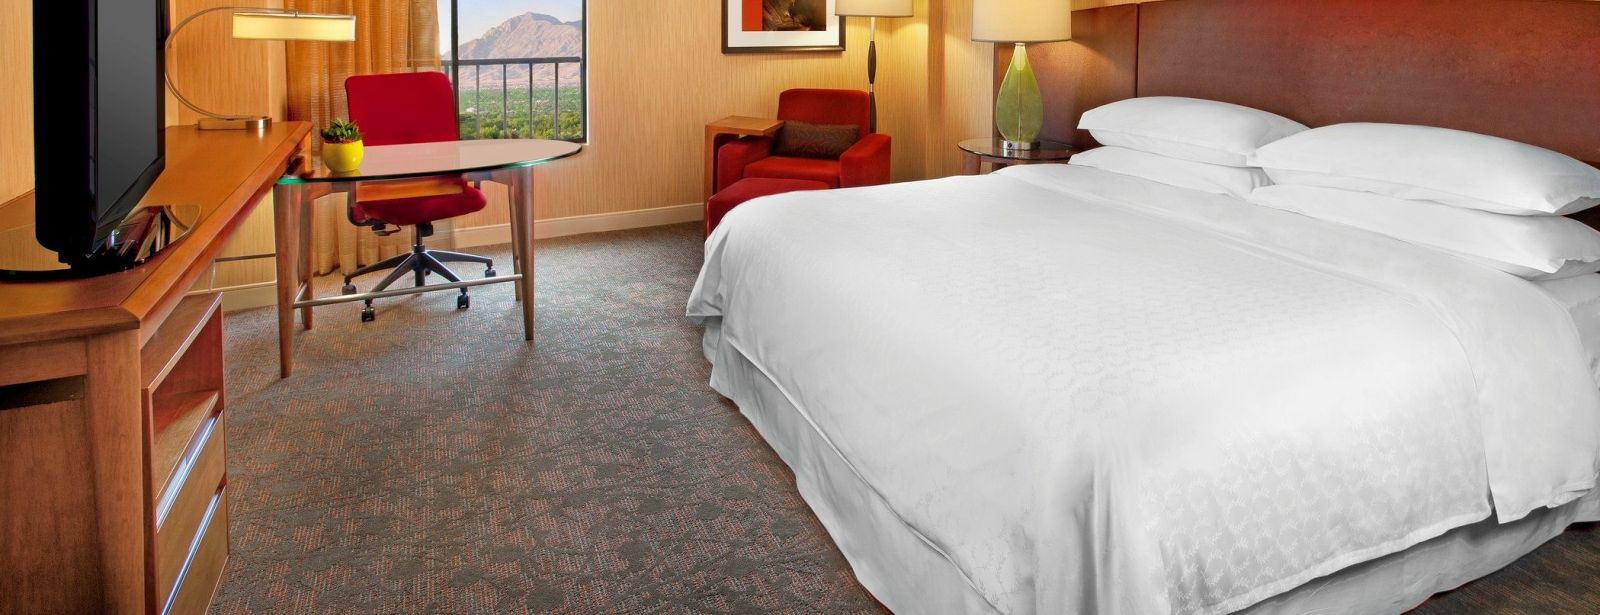 Traditional Guest Rooms | Sheraton Albuquerque Airport Hotel